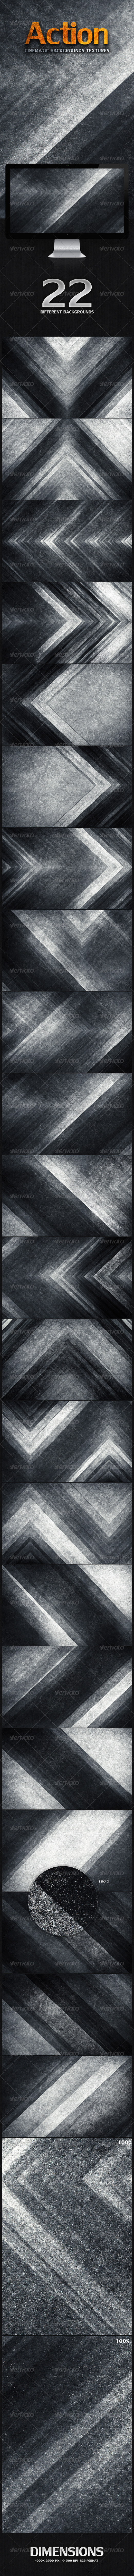 GraphicRiver Action Cinematic Backgrounds Textures 4288061